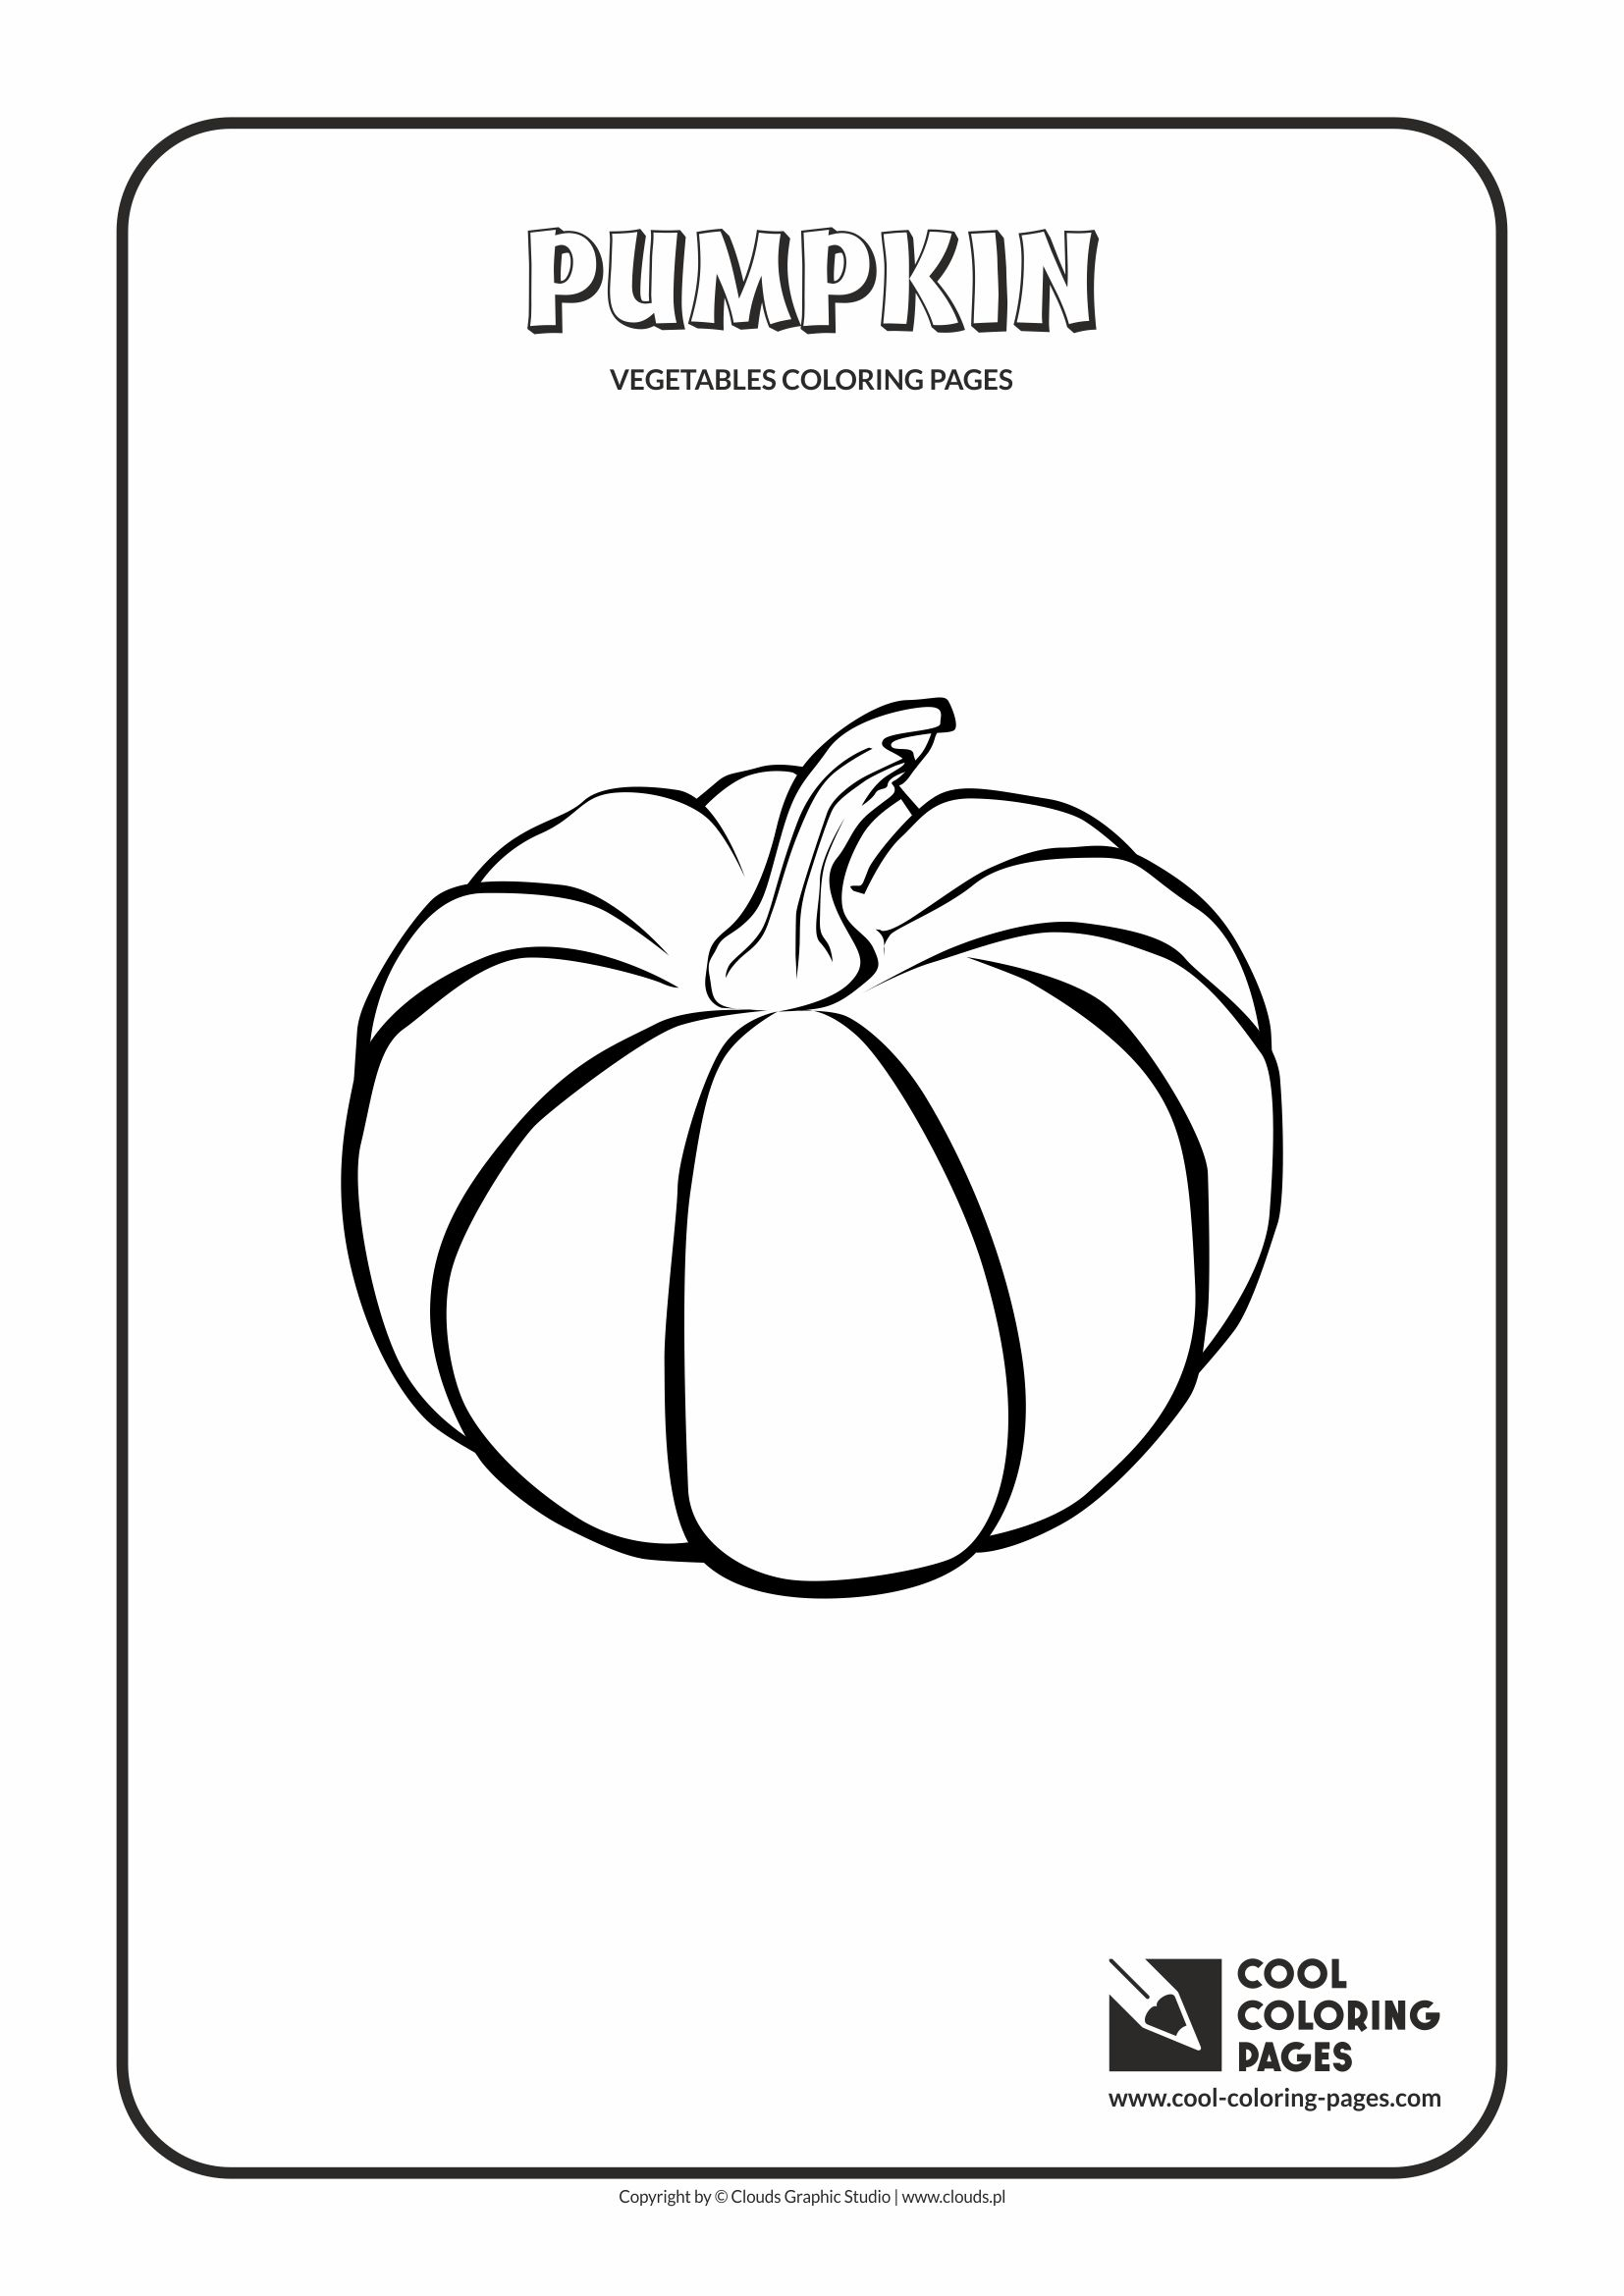 Cool Coloring Pages Pumpkin coloring page - Cool Coloring Pages ...